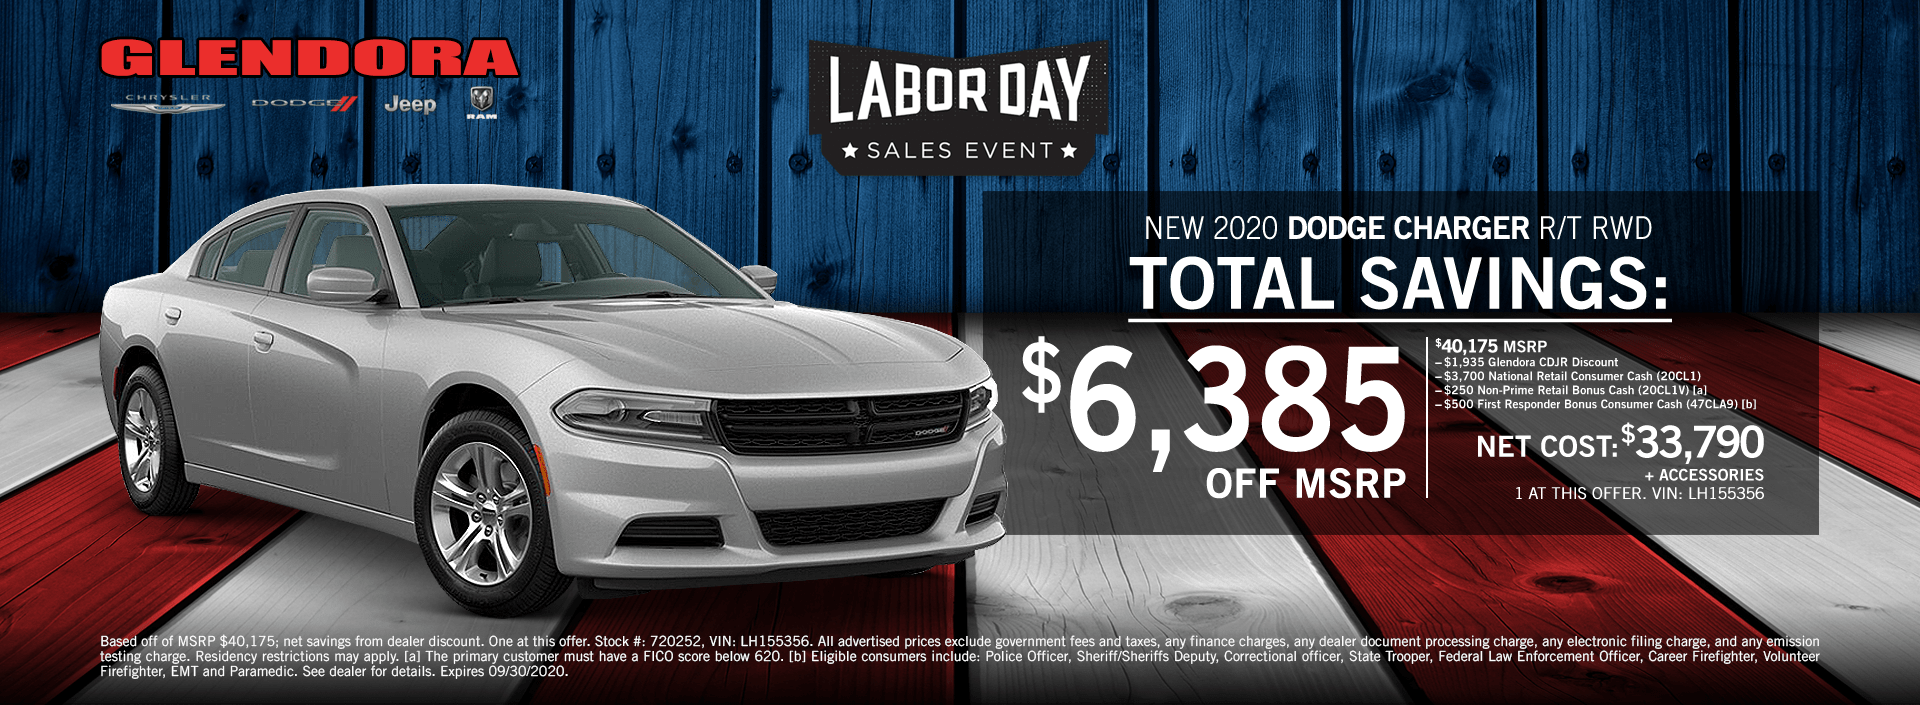 Dodge Charger Labor Day Sales Event Special